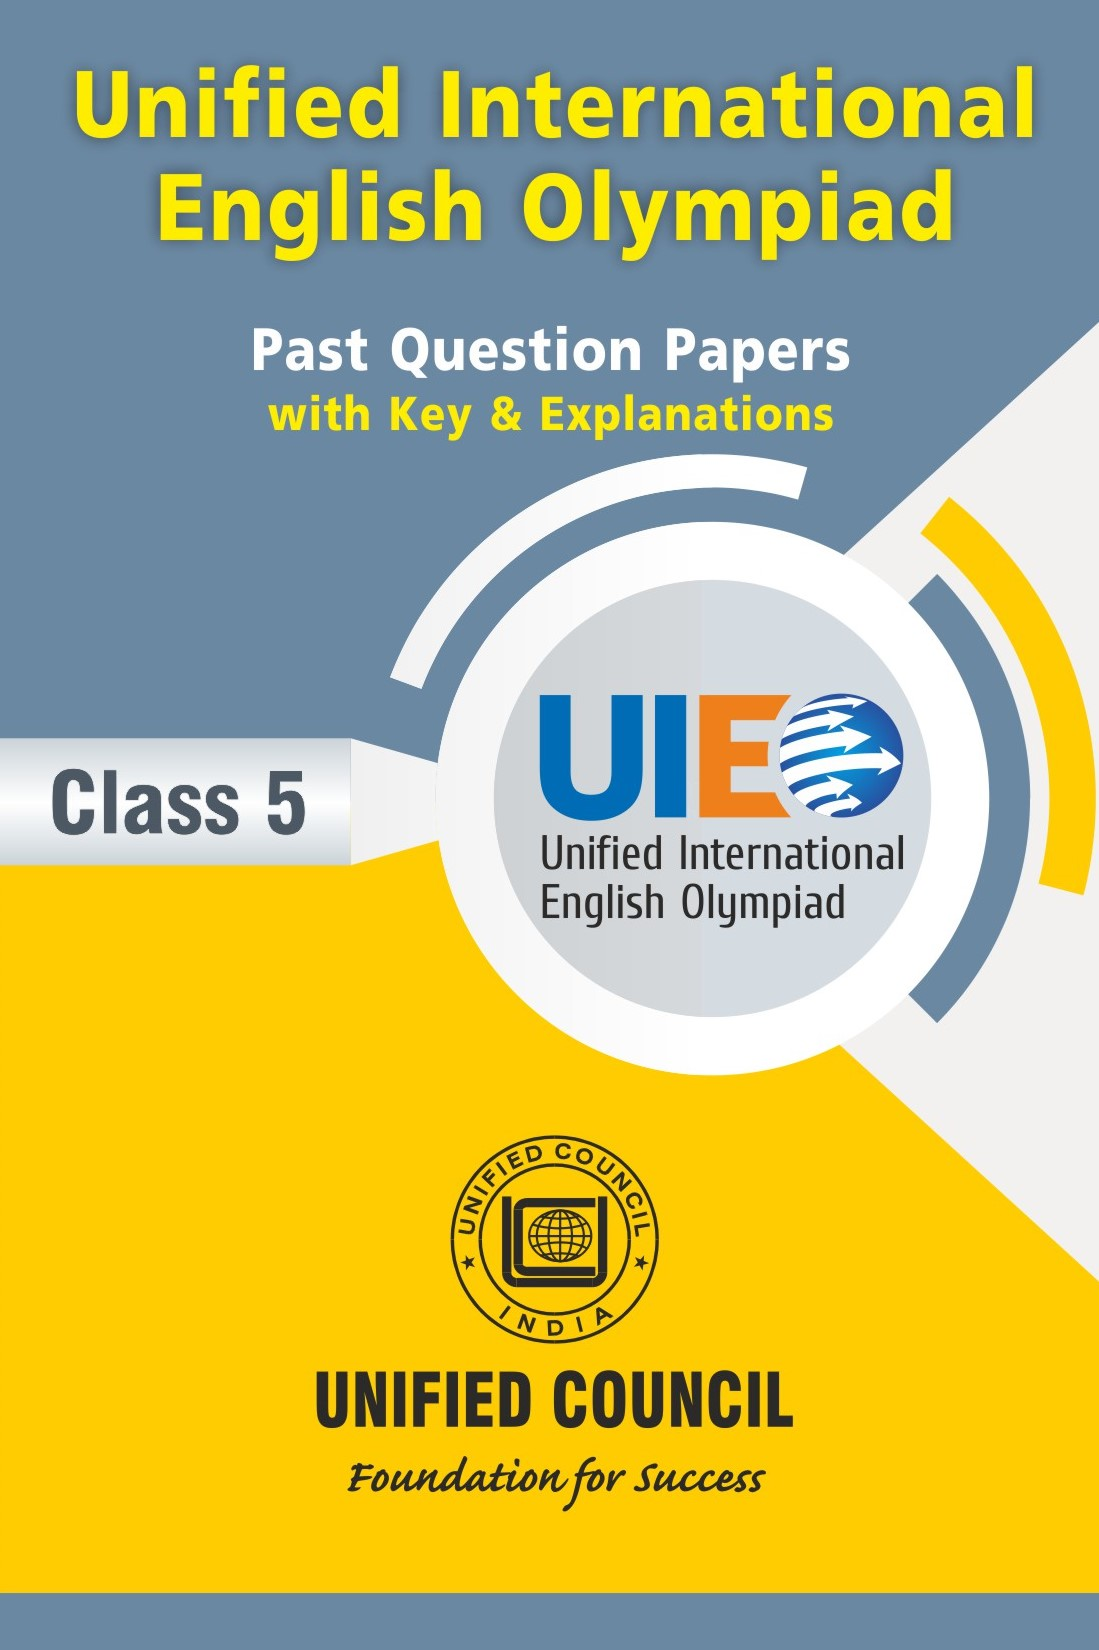 Class 5 bmatalent uieo past question papers class 5 downloadable e book fandeluxe Gallery